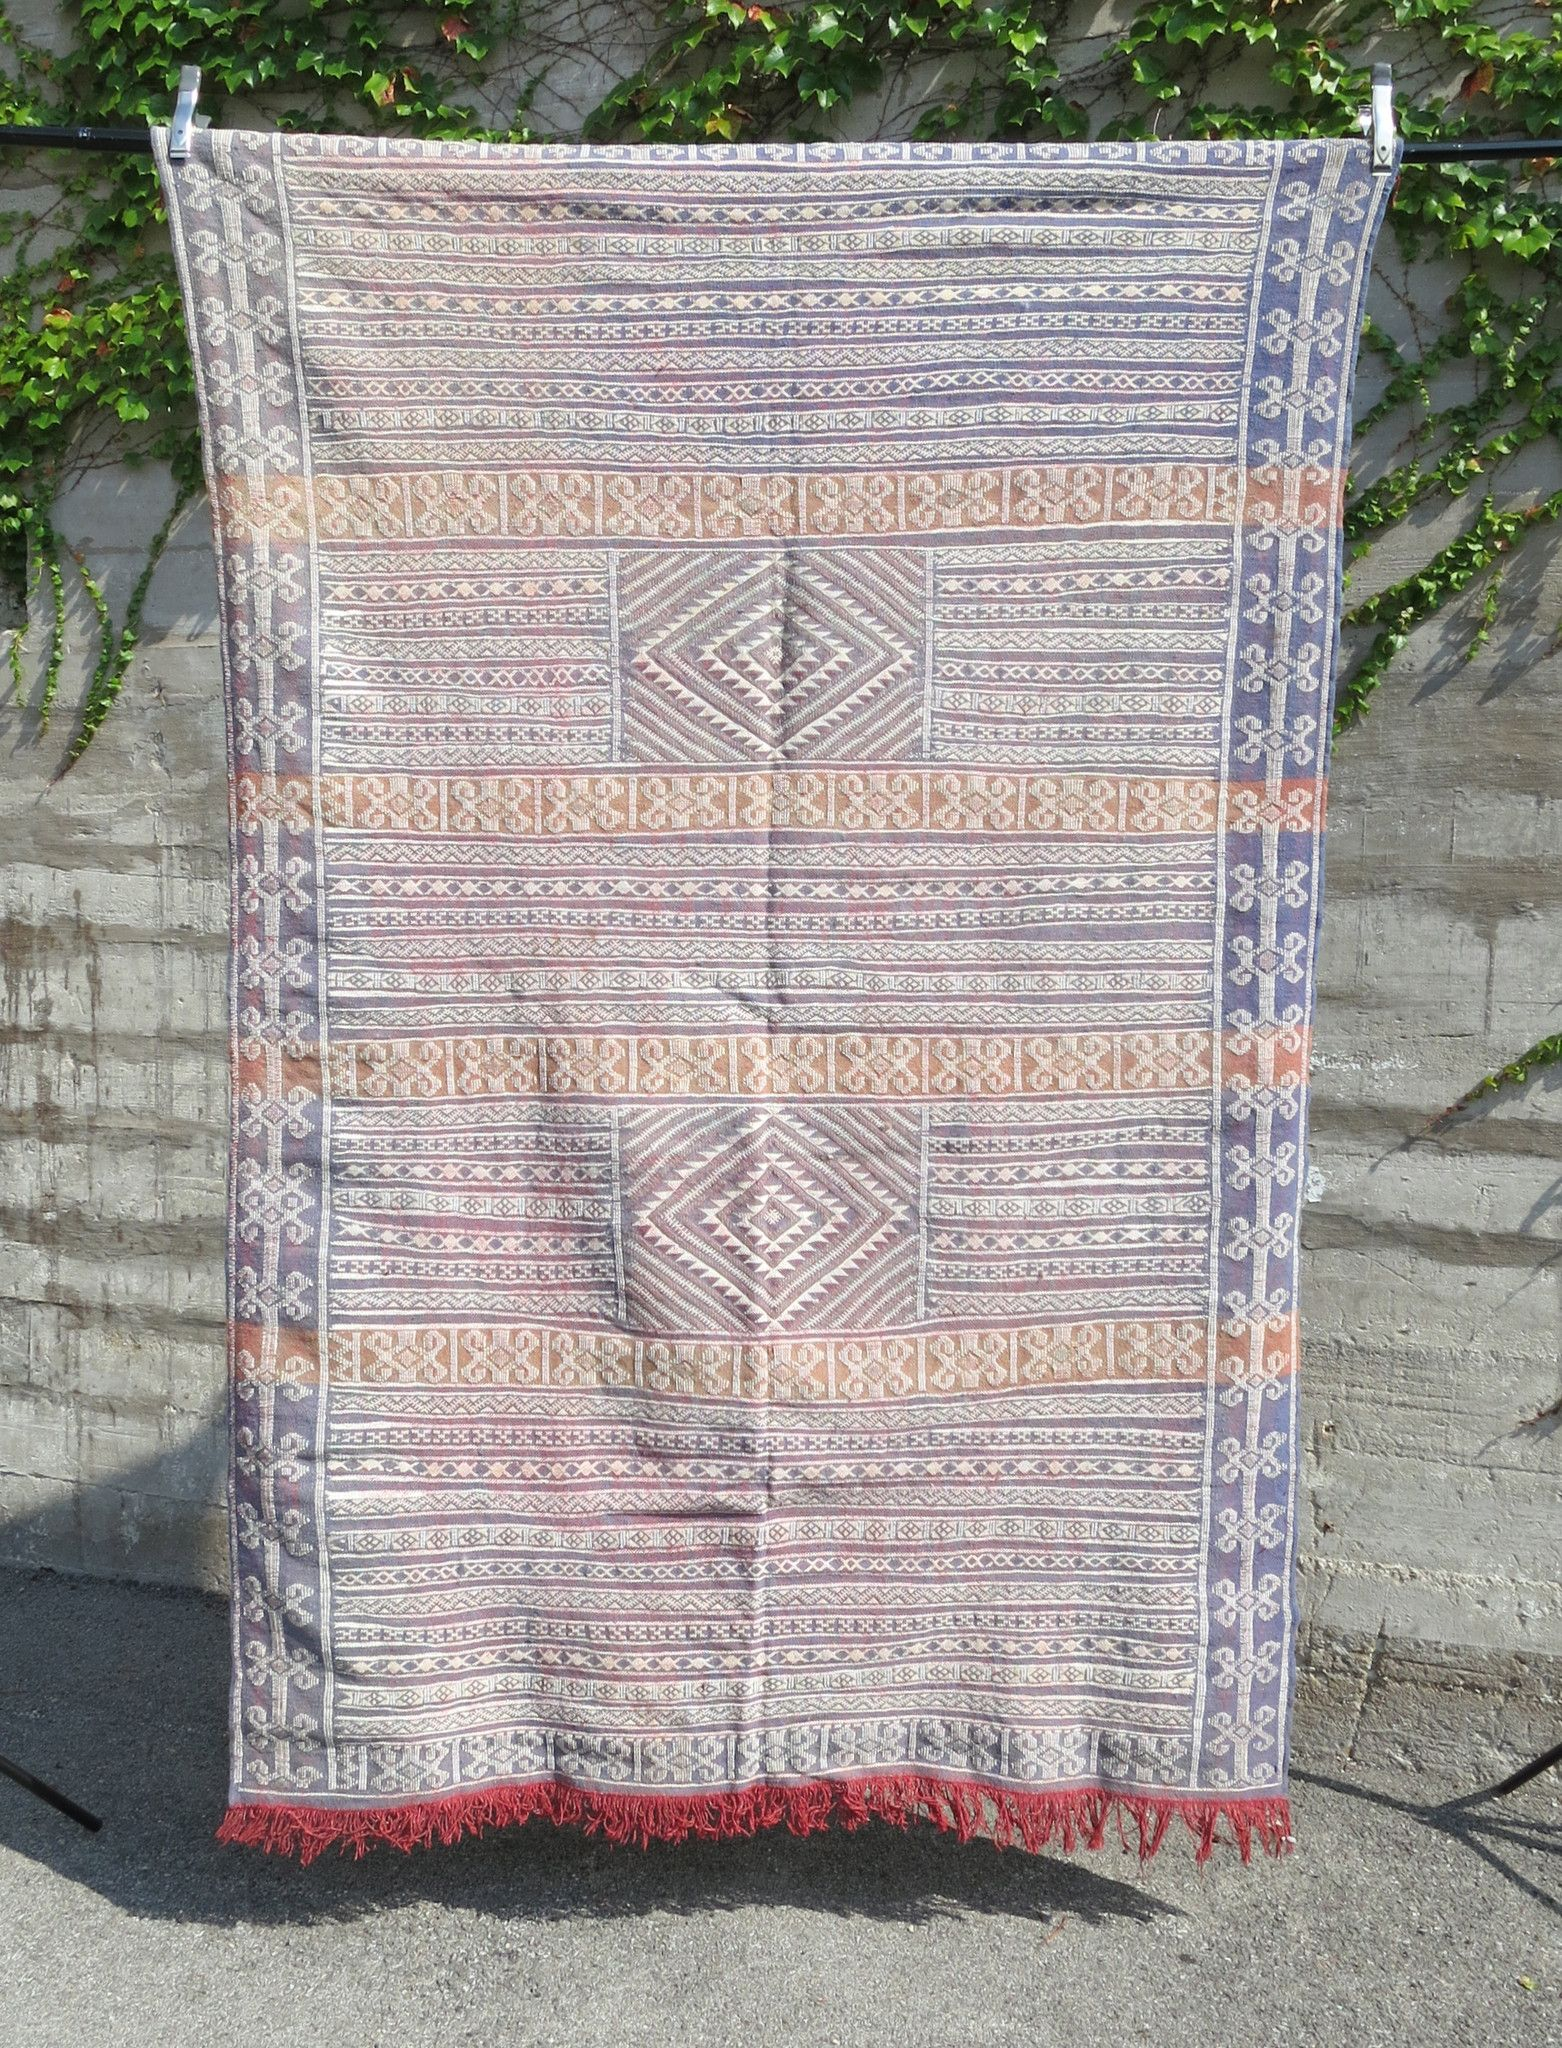 'GOATS IN A TREE' WOVEN BERBER FLAT WEAVE RUG